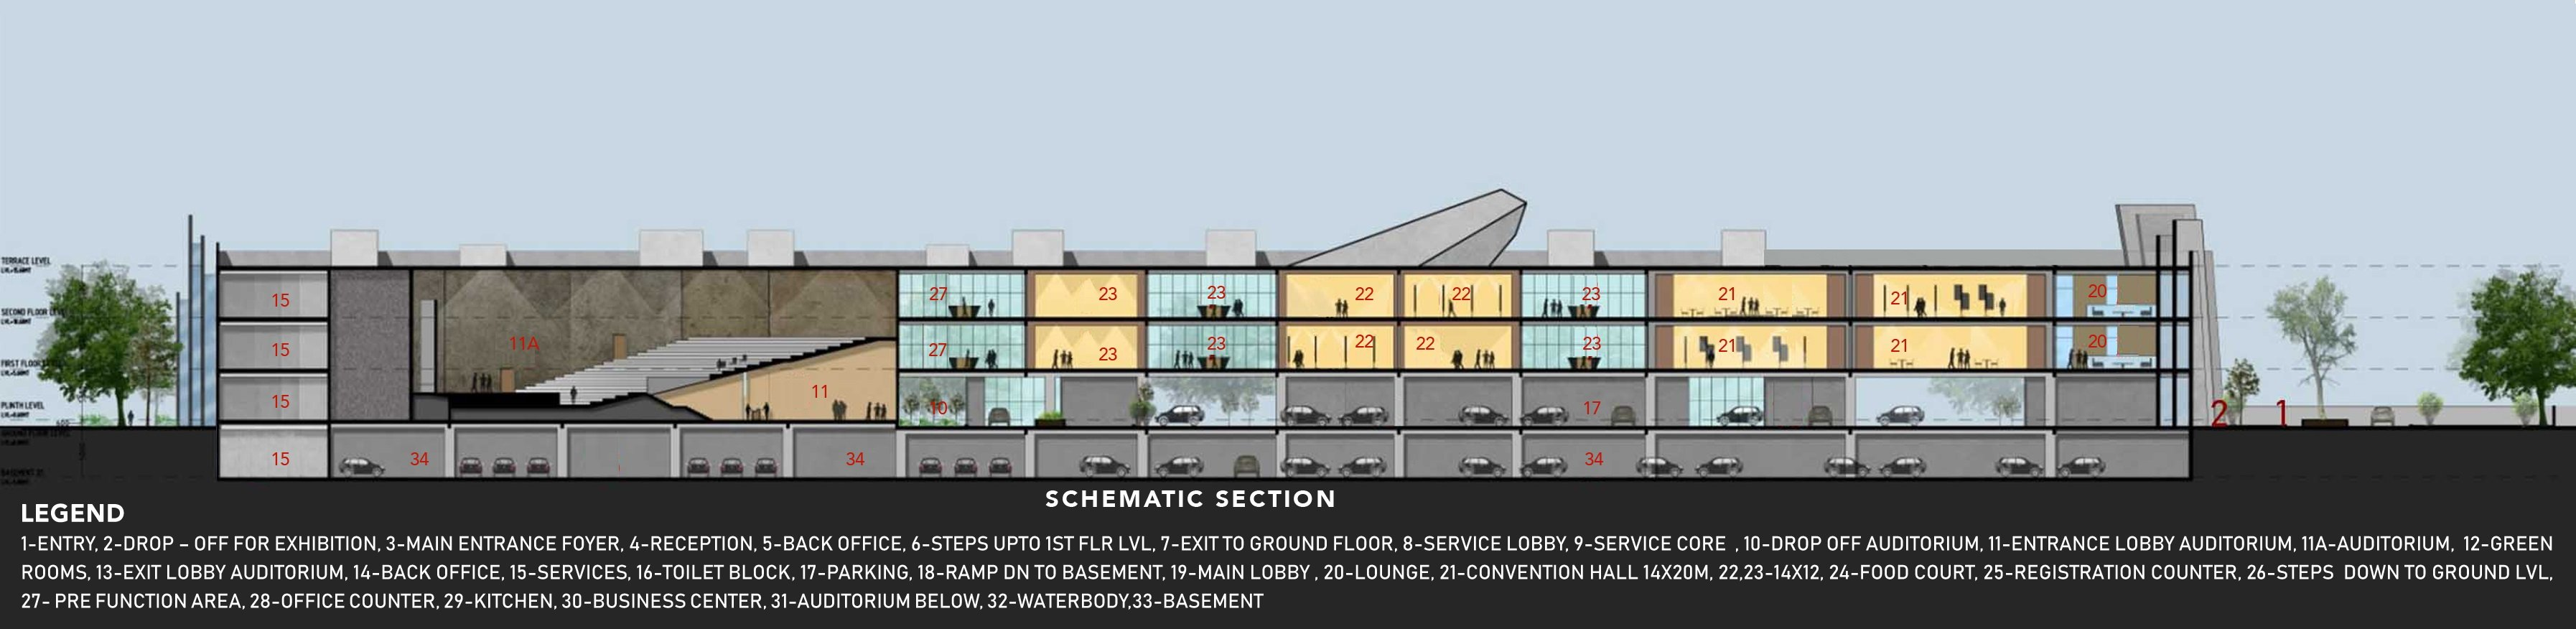 SCHEMATIC SECTION sanjay puri architects